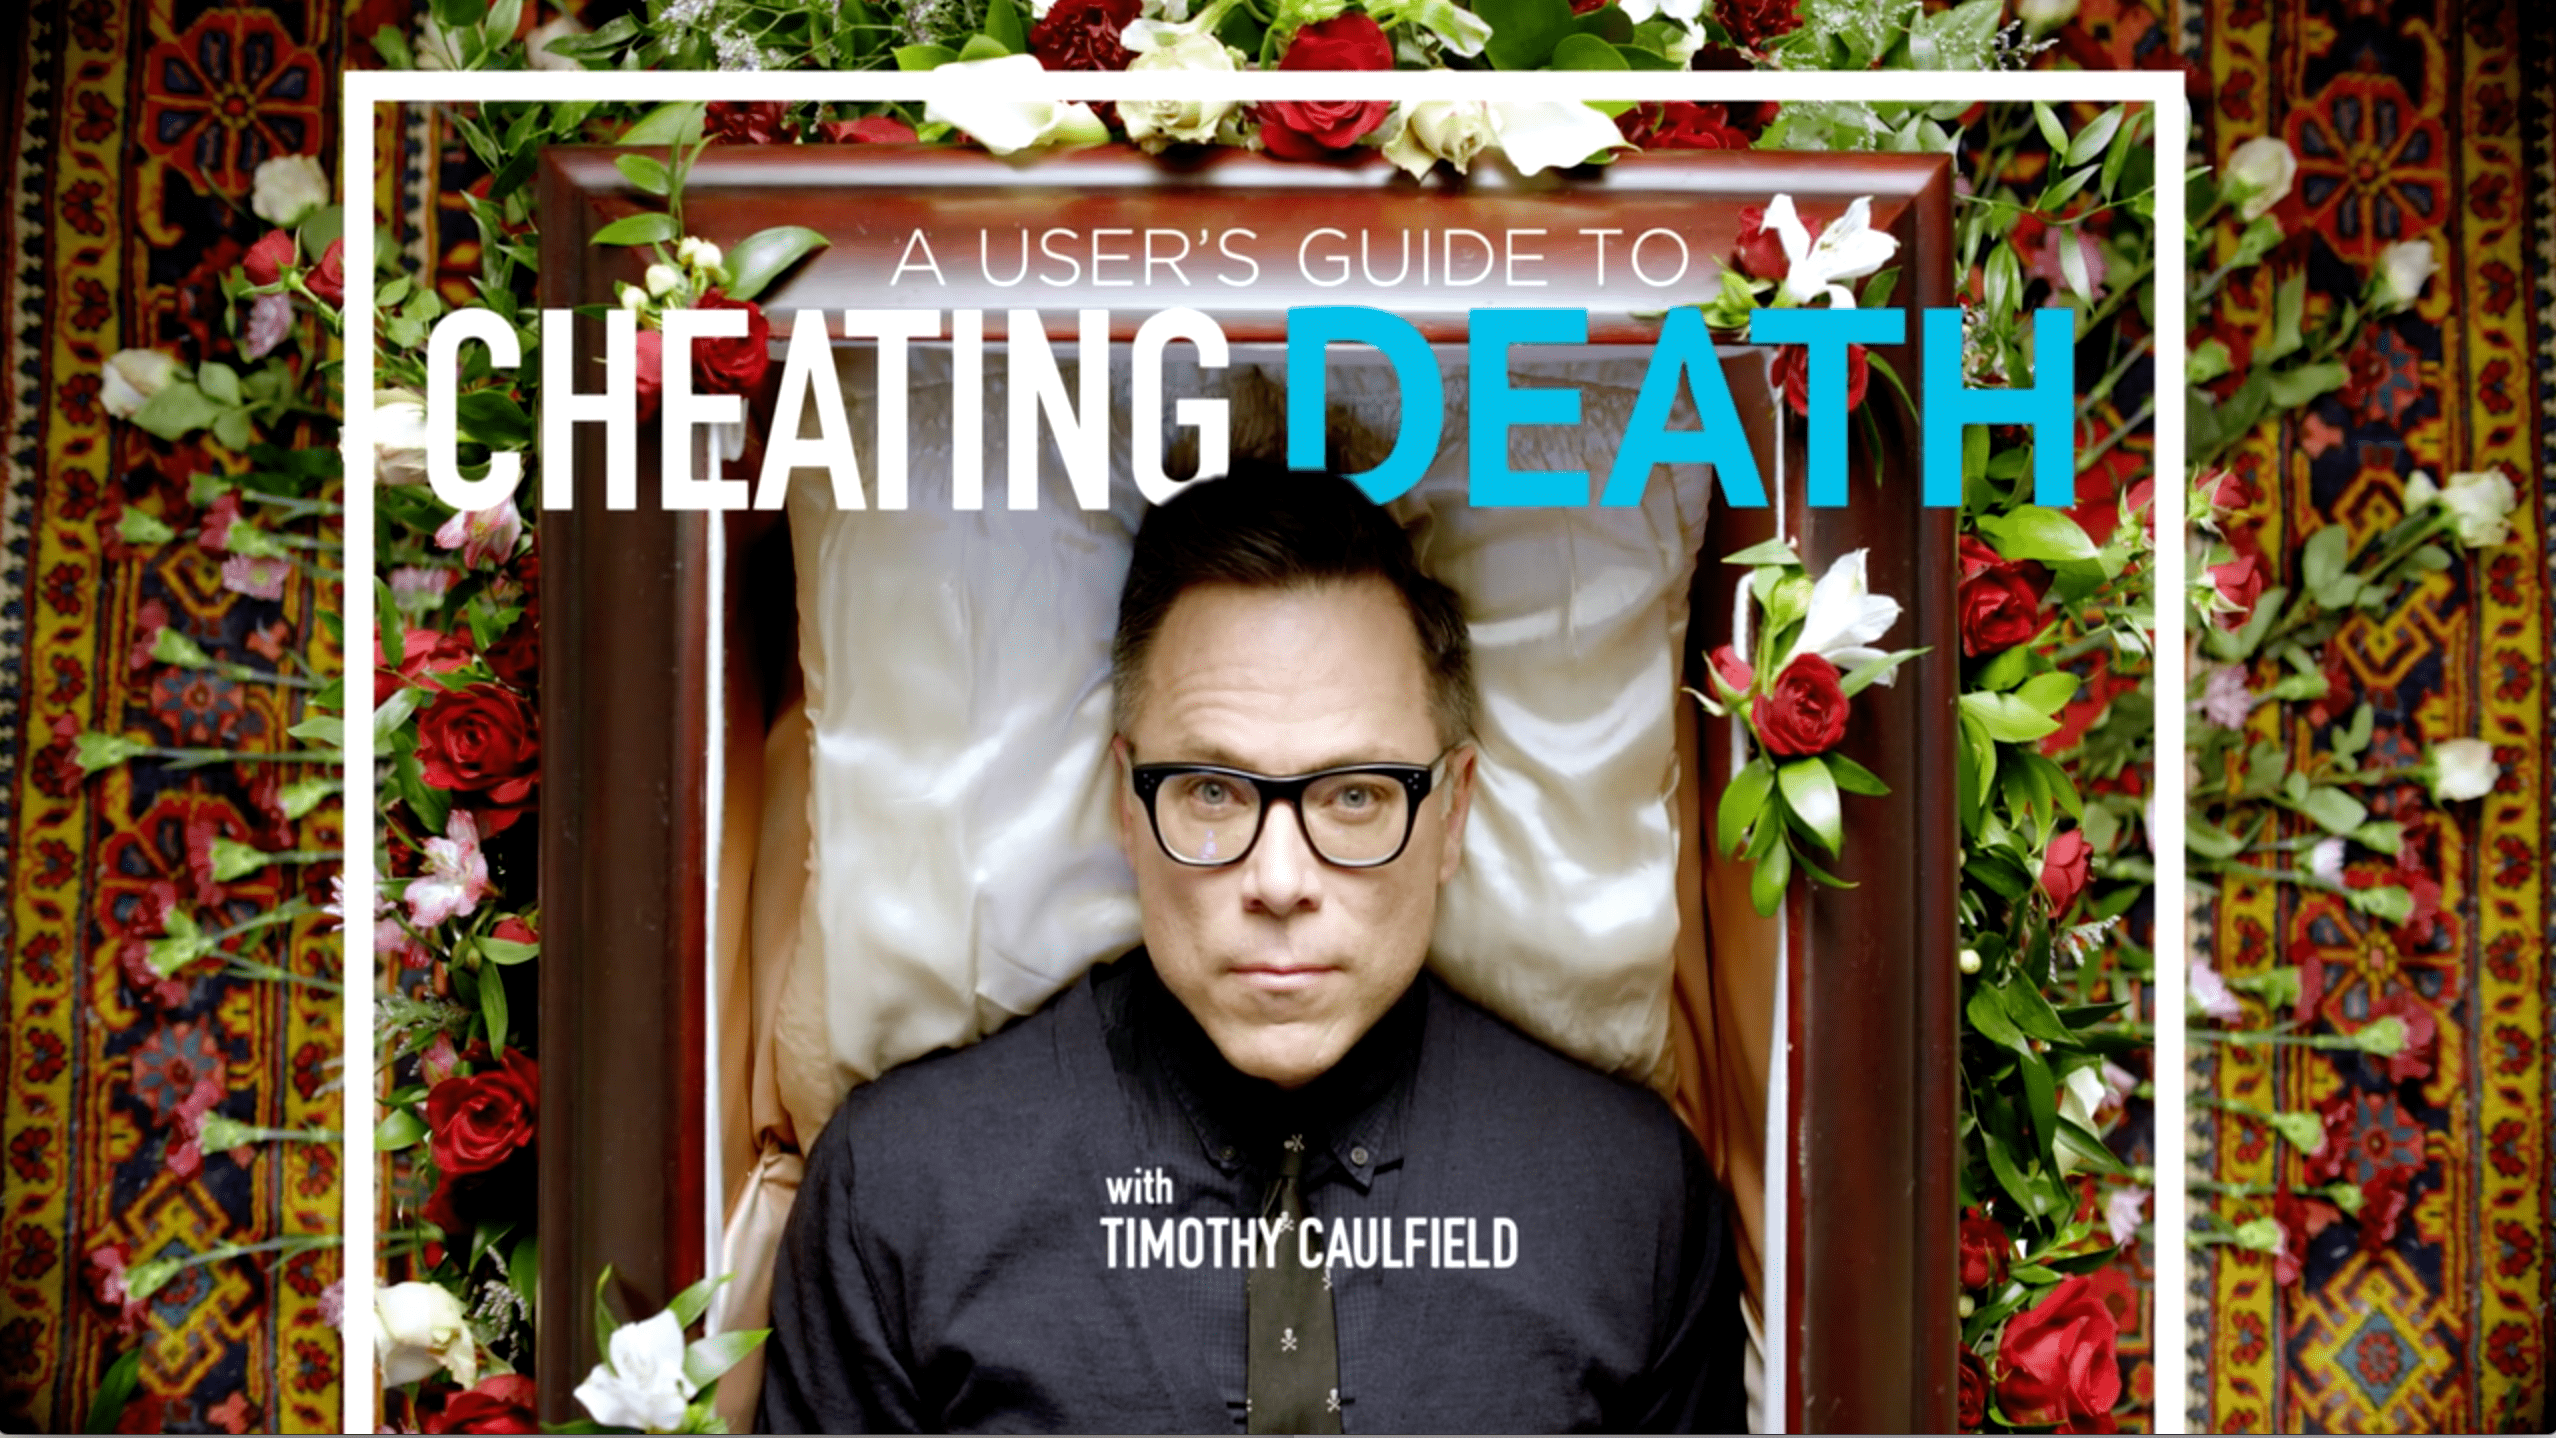 'A User's Guide to Cheating Death:  Detox' -- how does Timothy Caulfield approach this?